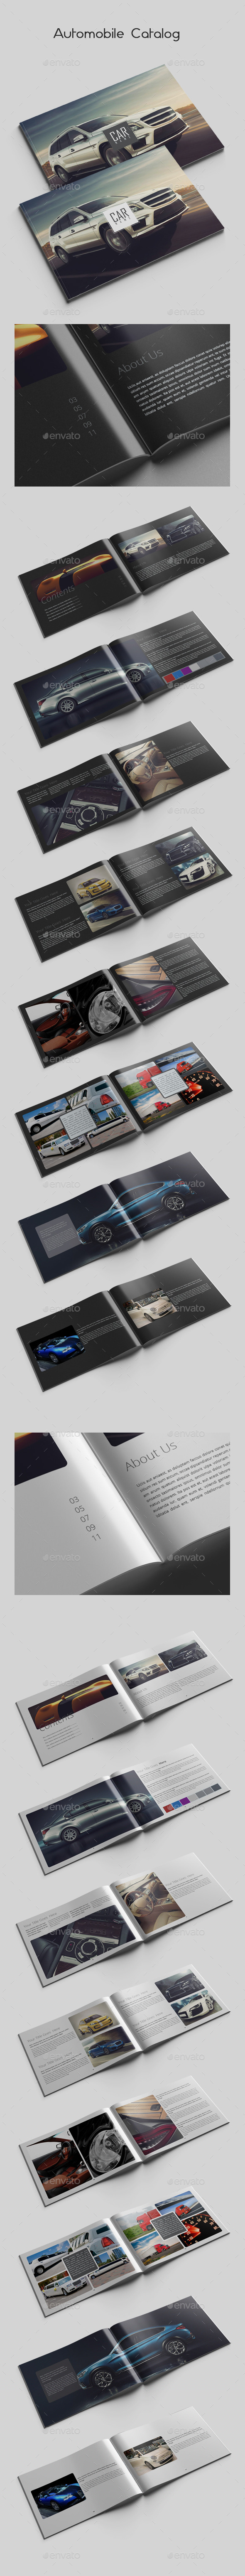 GraphicRiver Automobile Catalog 10275471